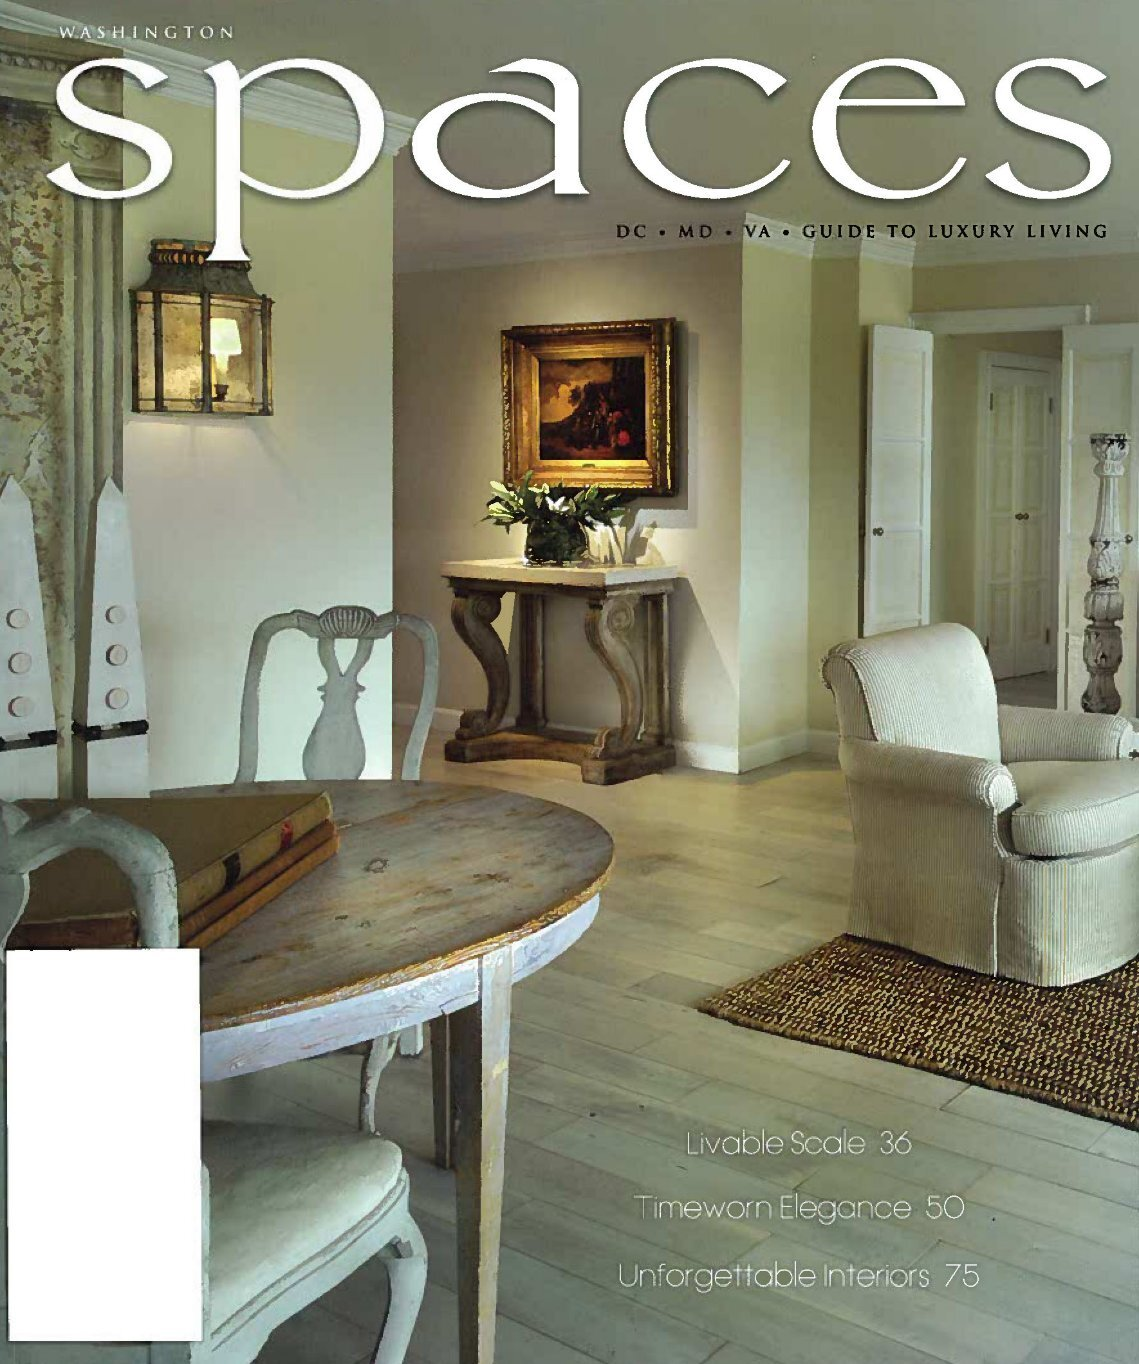 The Top Quality Interior Designs Of Whitehouse Decorations: 5 Free Magazines From DECORATINGDEN.COM